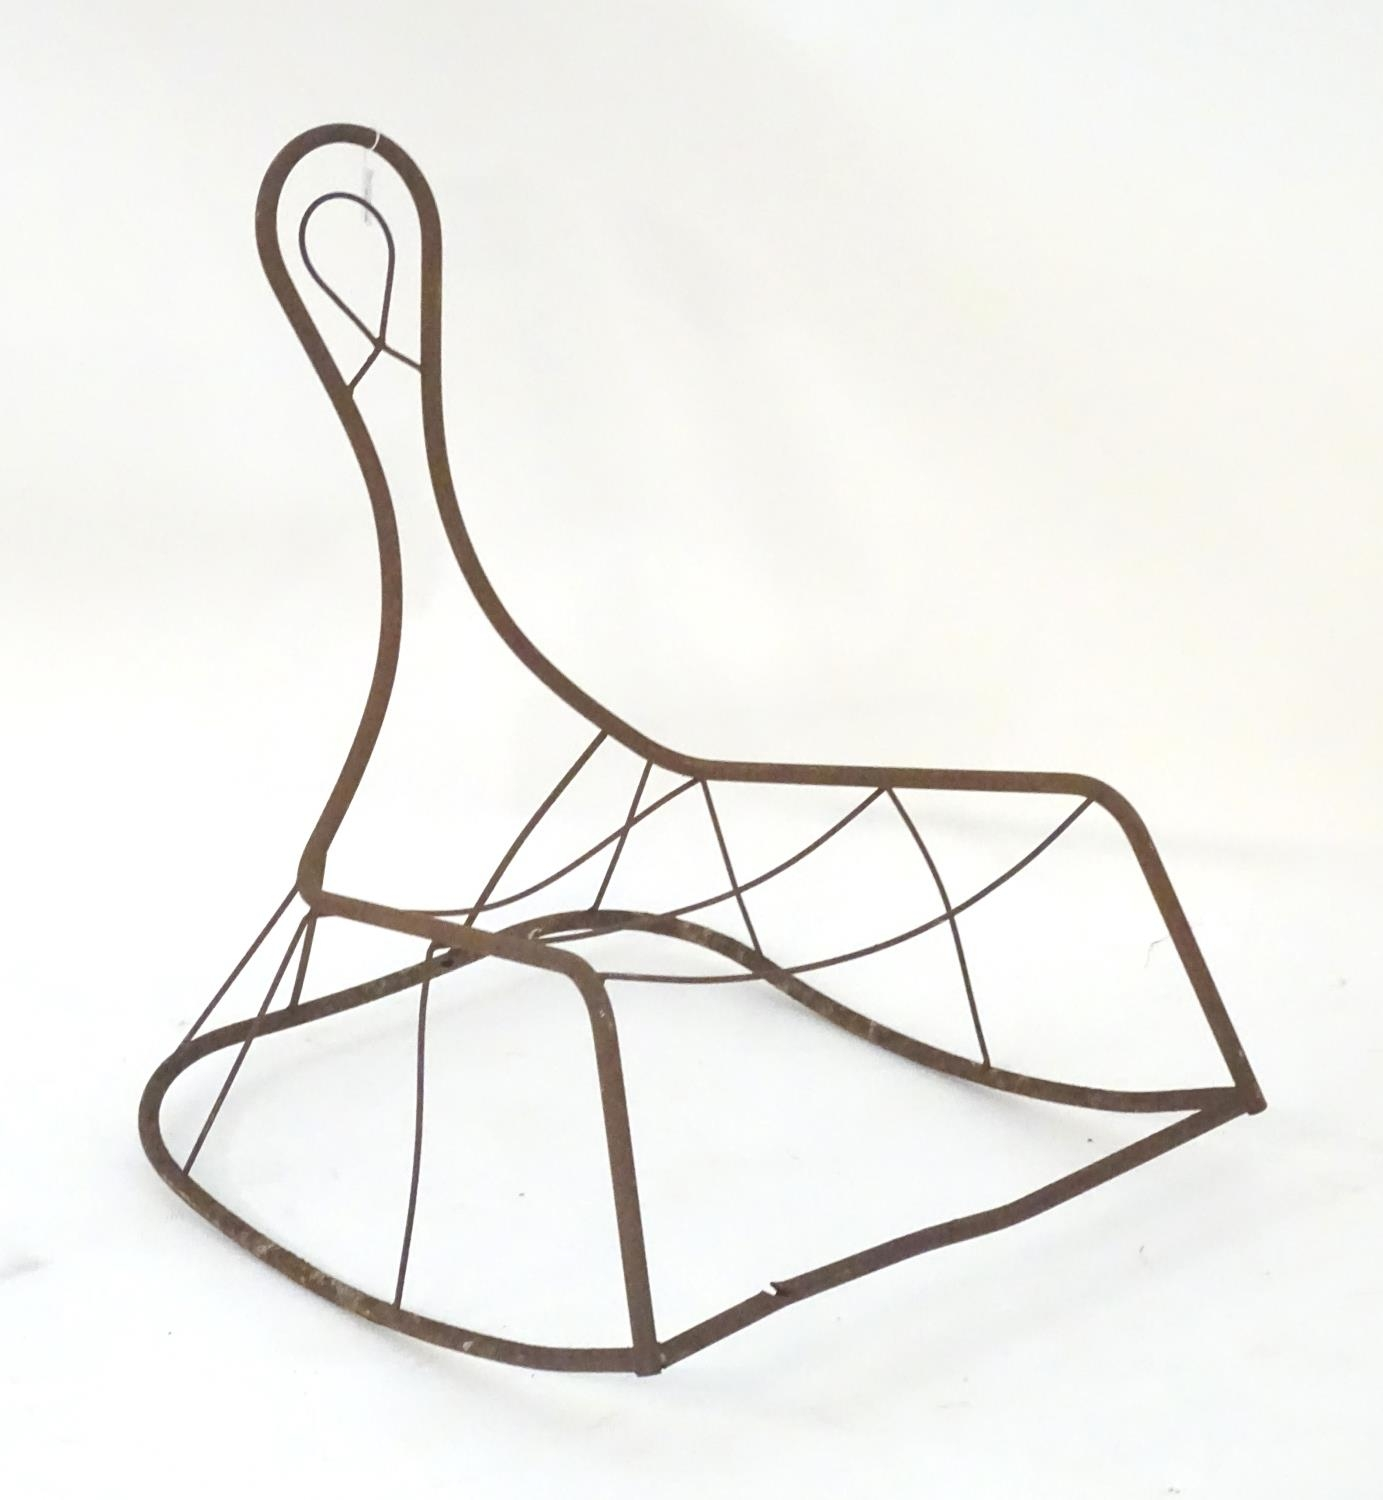 Garden & Architectural, Salvage: a mid-20thC metal rocking chair frame, suitable for use as a